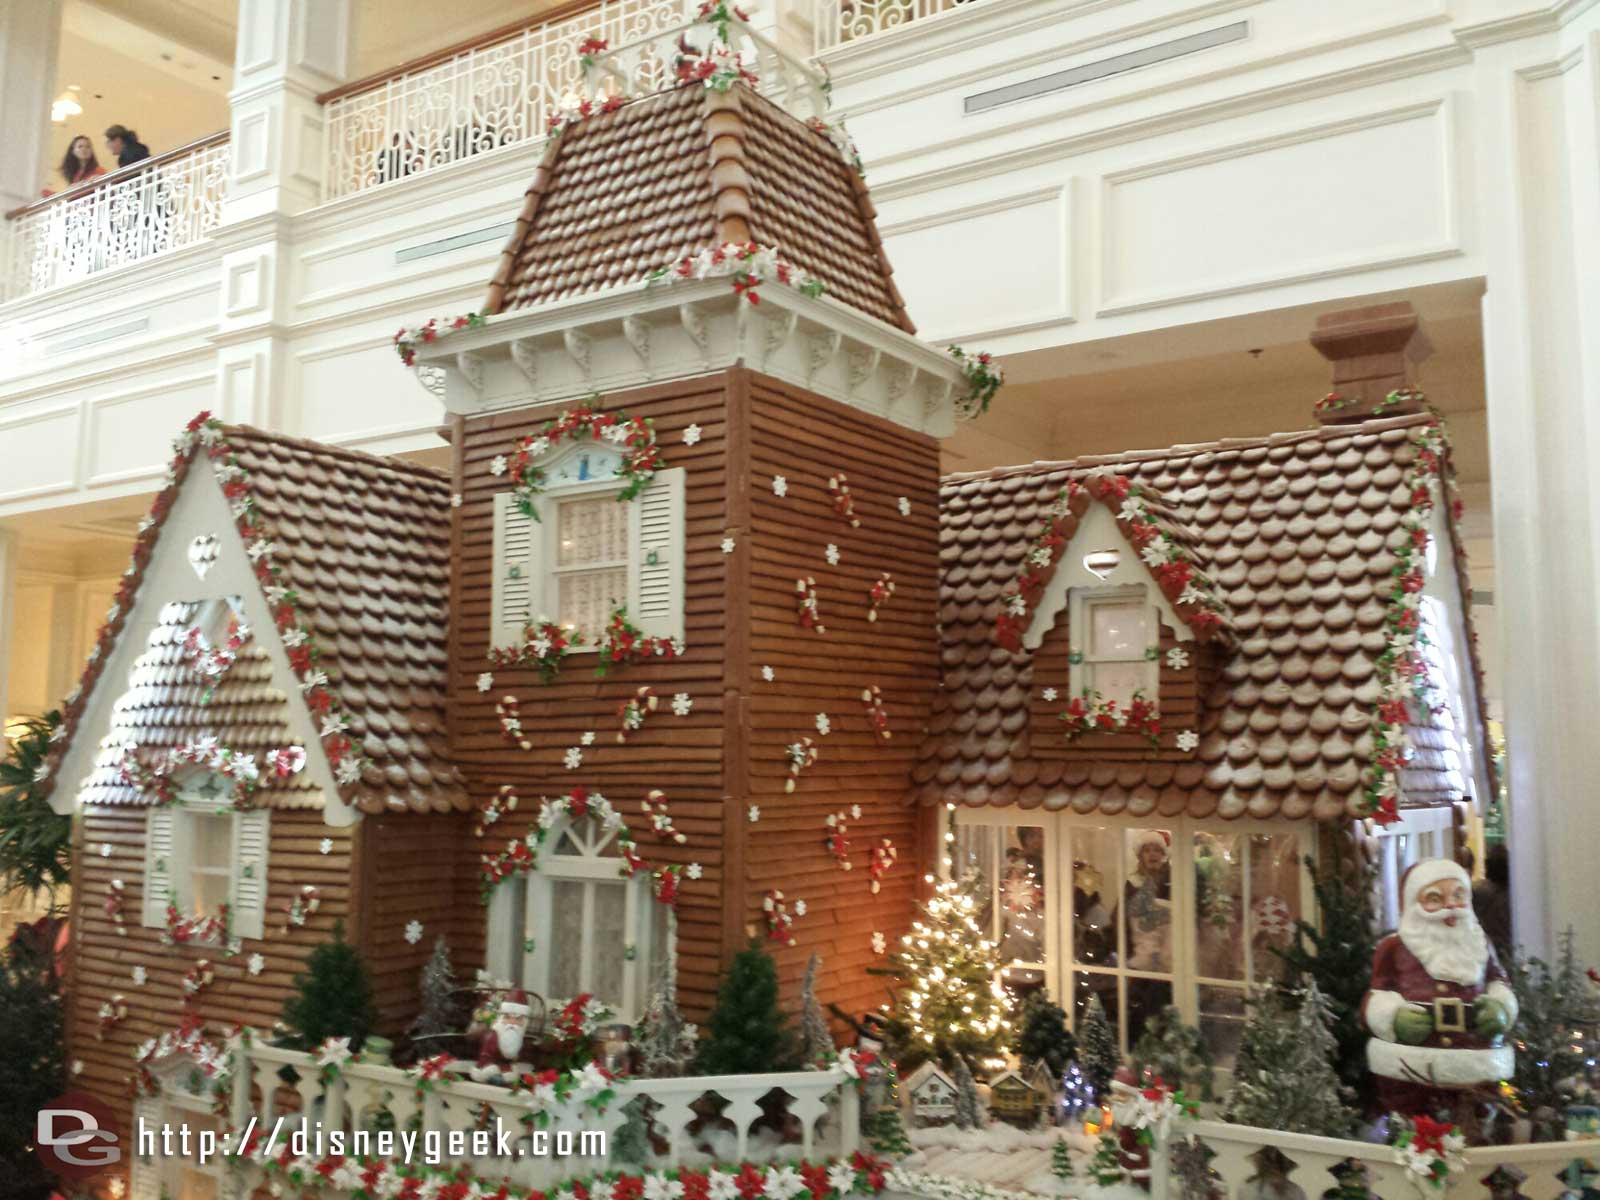 The Grand Floridian gingerbread house #WDW